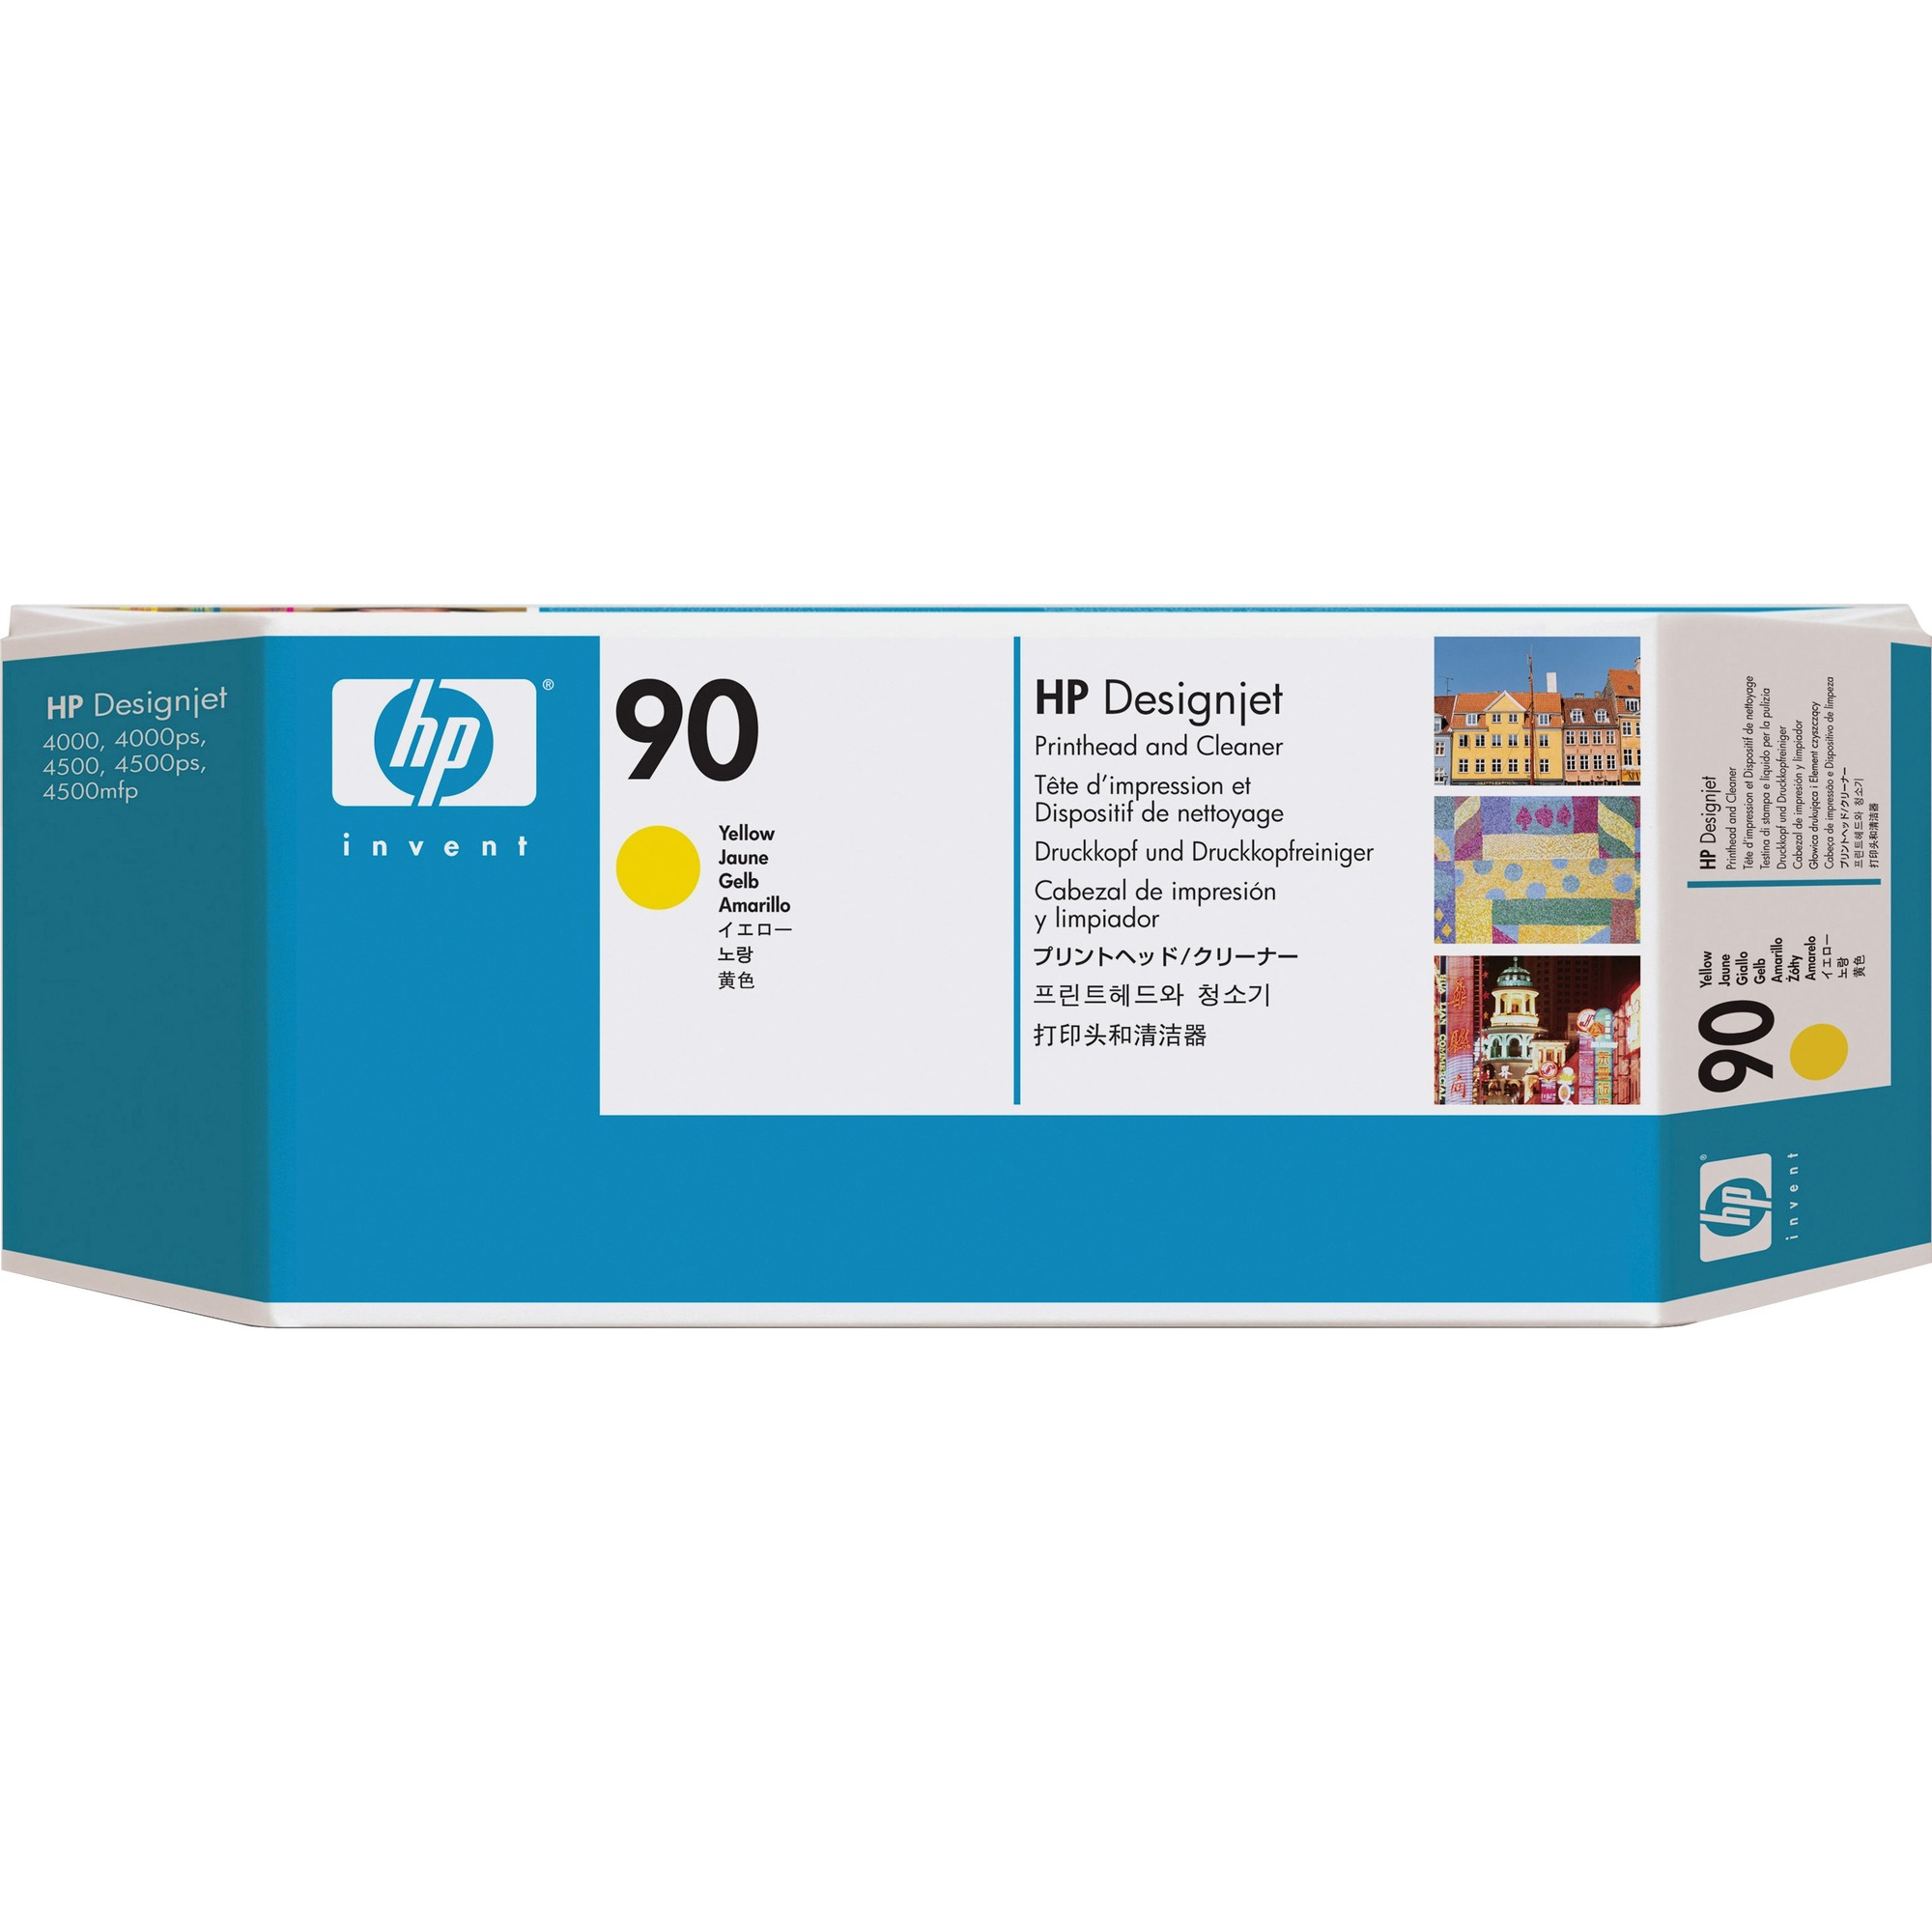 HP 90 Yellow Printhead with Cleaner - C5057A